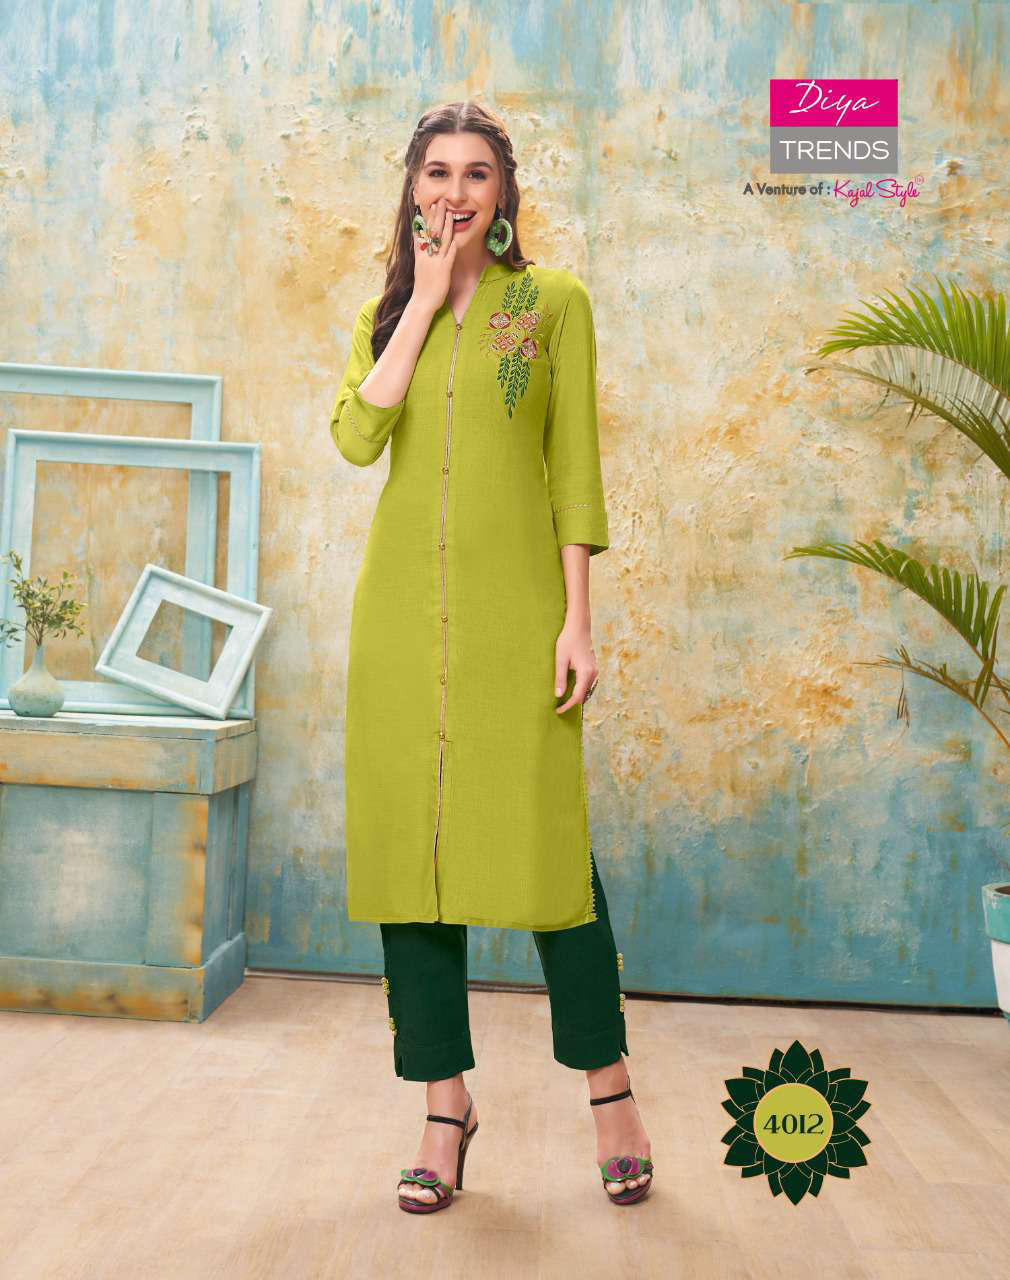 Diya Trends Forever Vol 4 by Kajal Style Kurti with Pant Wholesale Catalog 12 Pcs 13 - Diya Trends Forever Vol 4 by Kajal Style Kurti with Pant Wholesale Catalog 12 Pcs